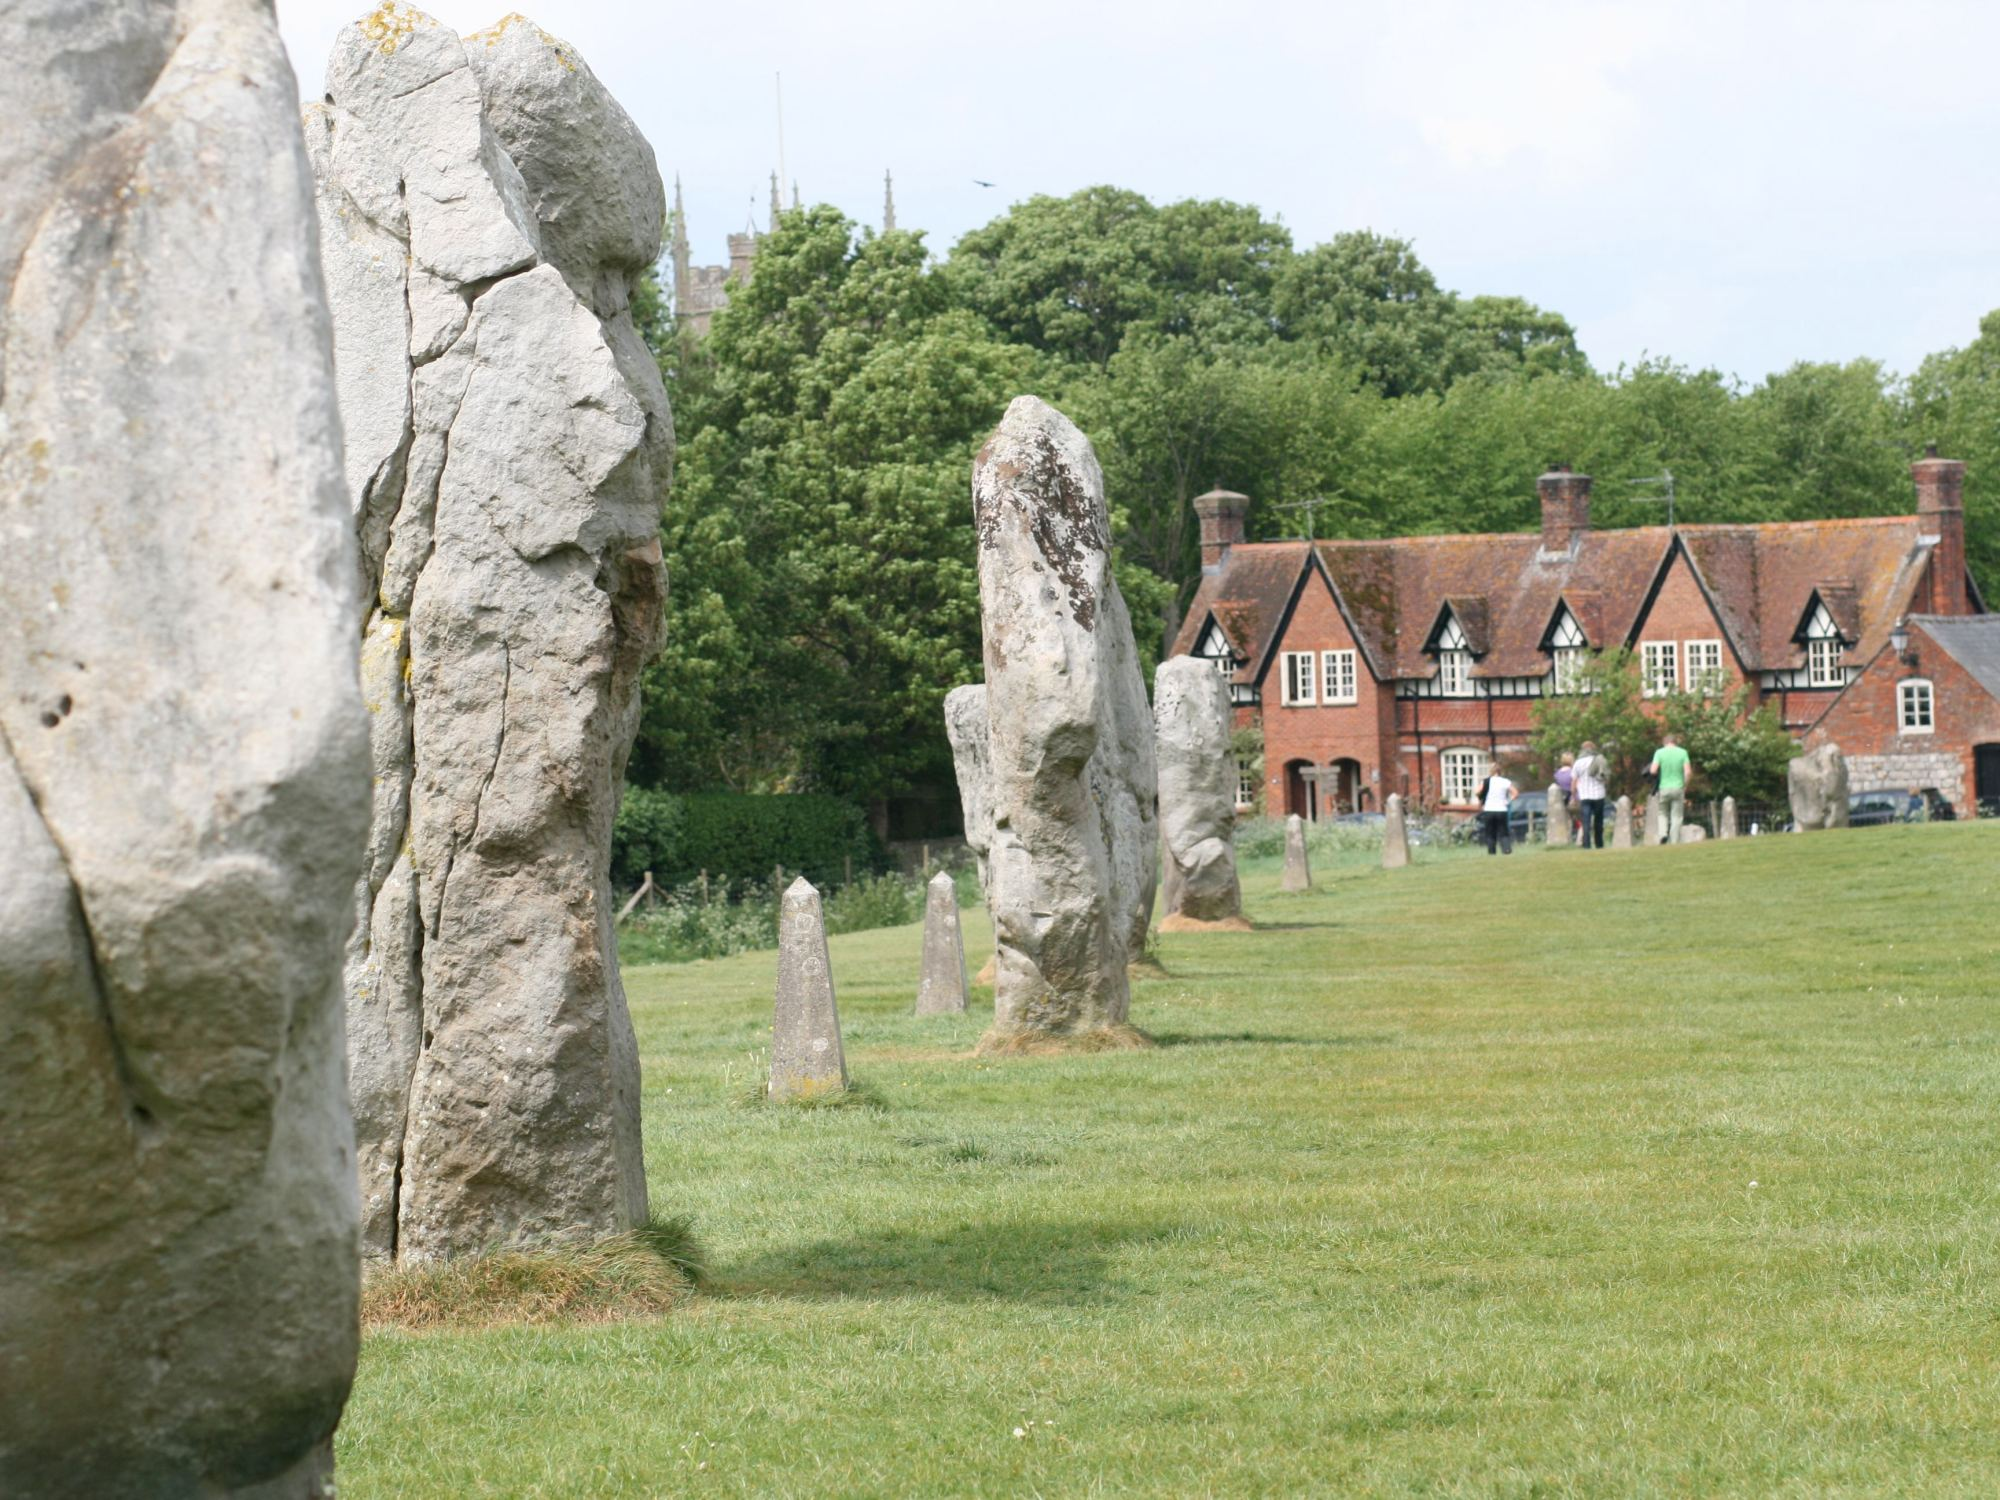 Avebury stone circle, avebury, stone circle, travel, photography, photos, images, travel photography, travel photos, travel guide, travel video, Avebury travel photography